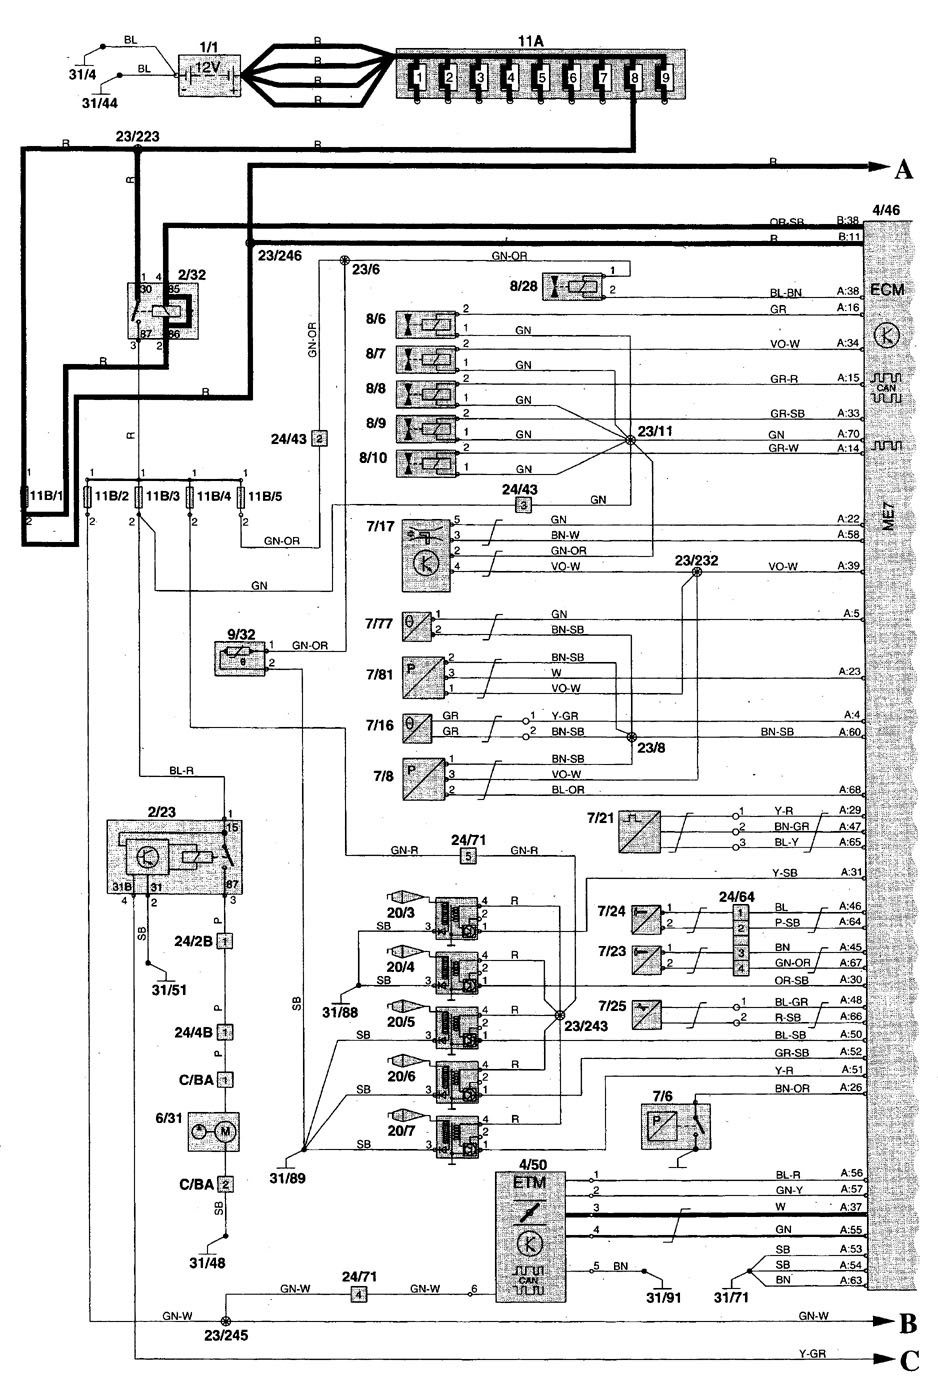 Chevrolet C70 Wiring Diagram Auto Electrical 1984 Chevy Harness 1980